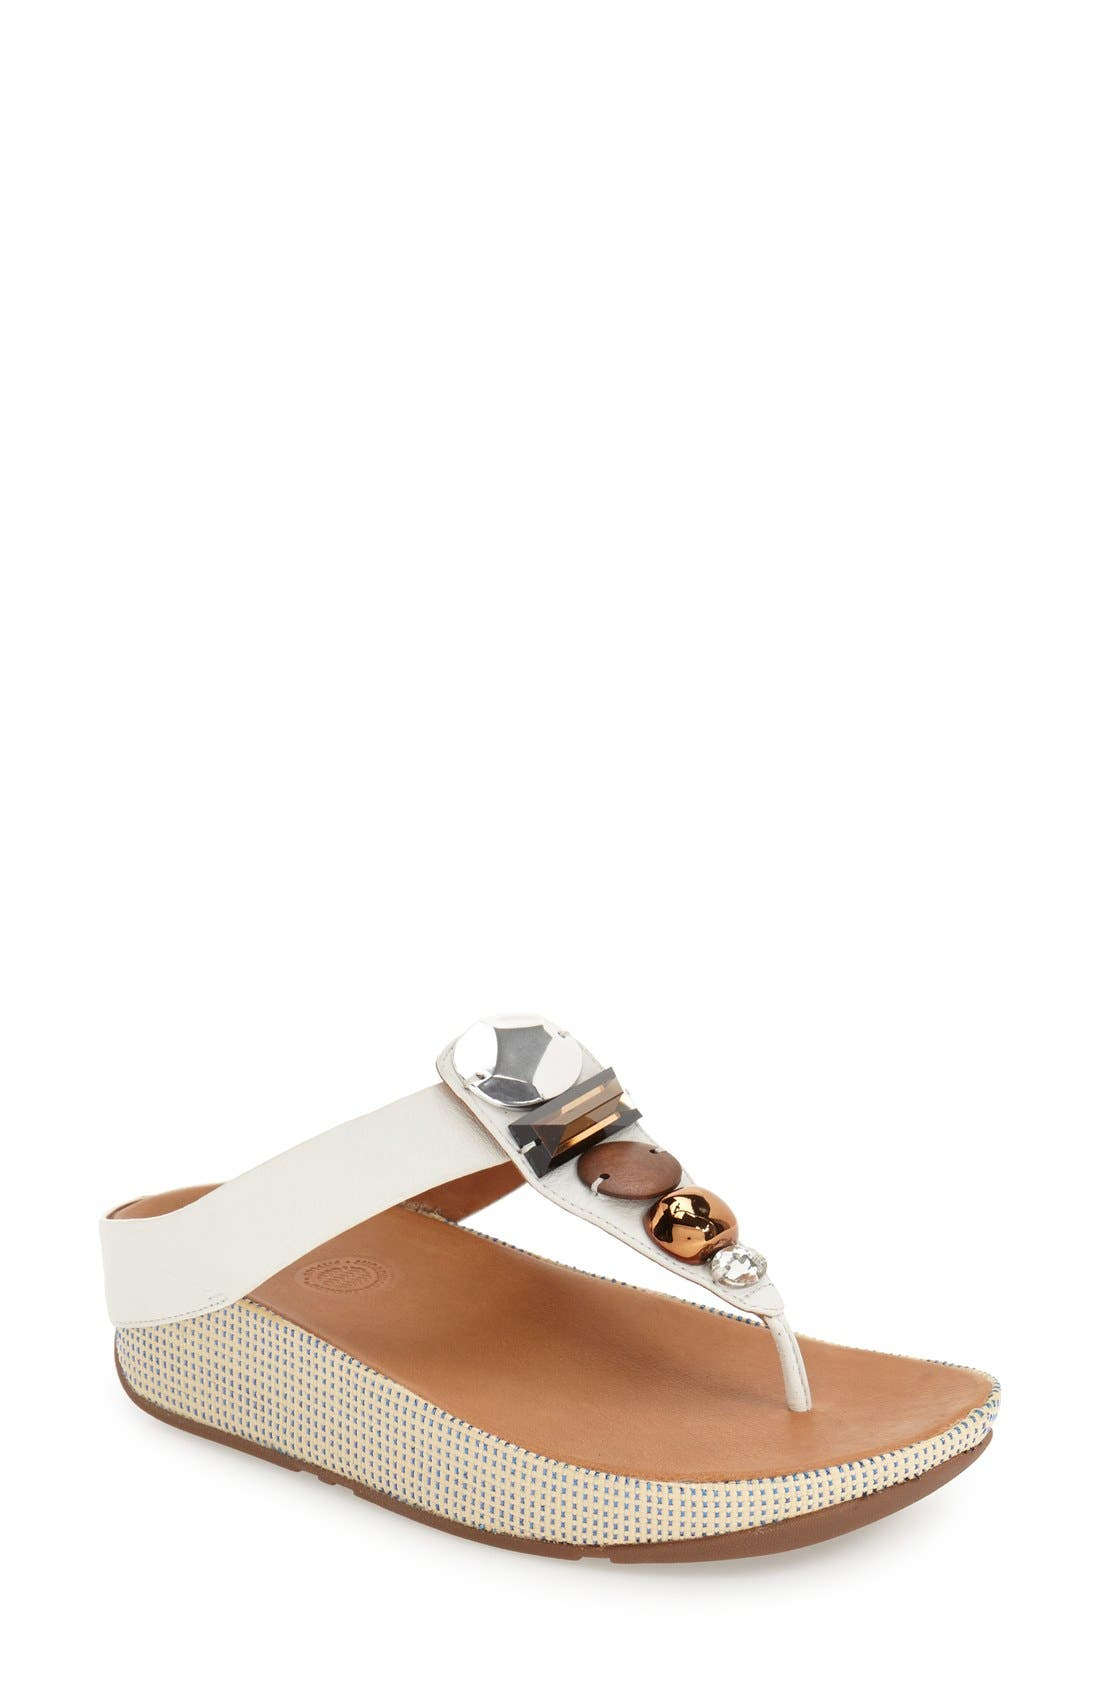 FITFLOP Jewely Flip Flop